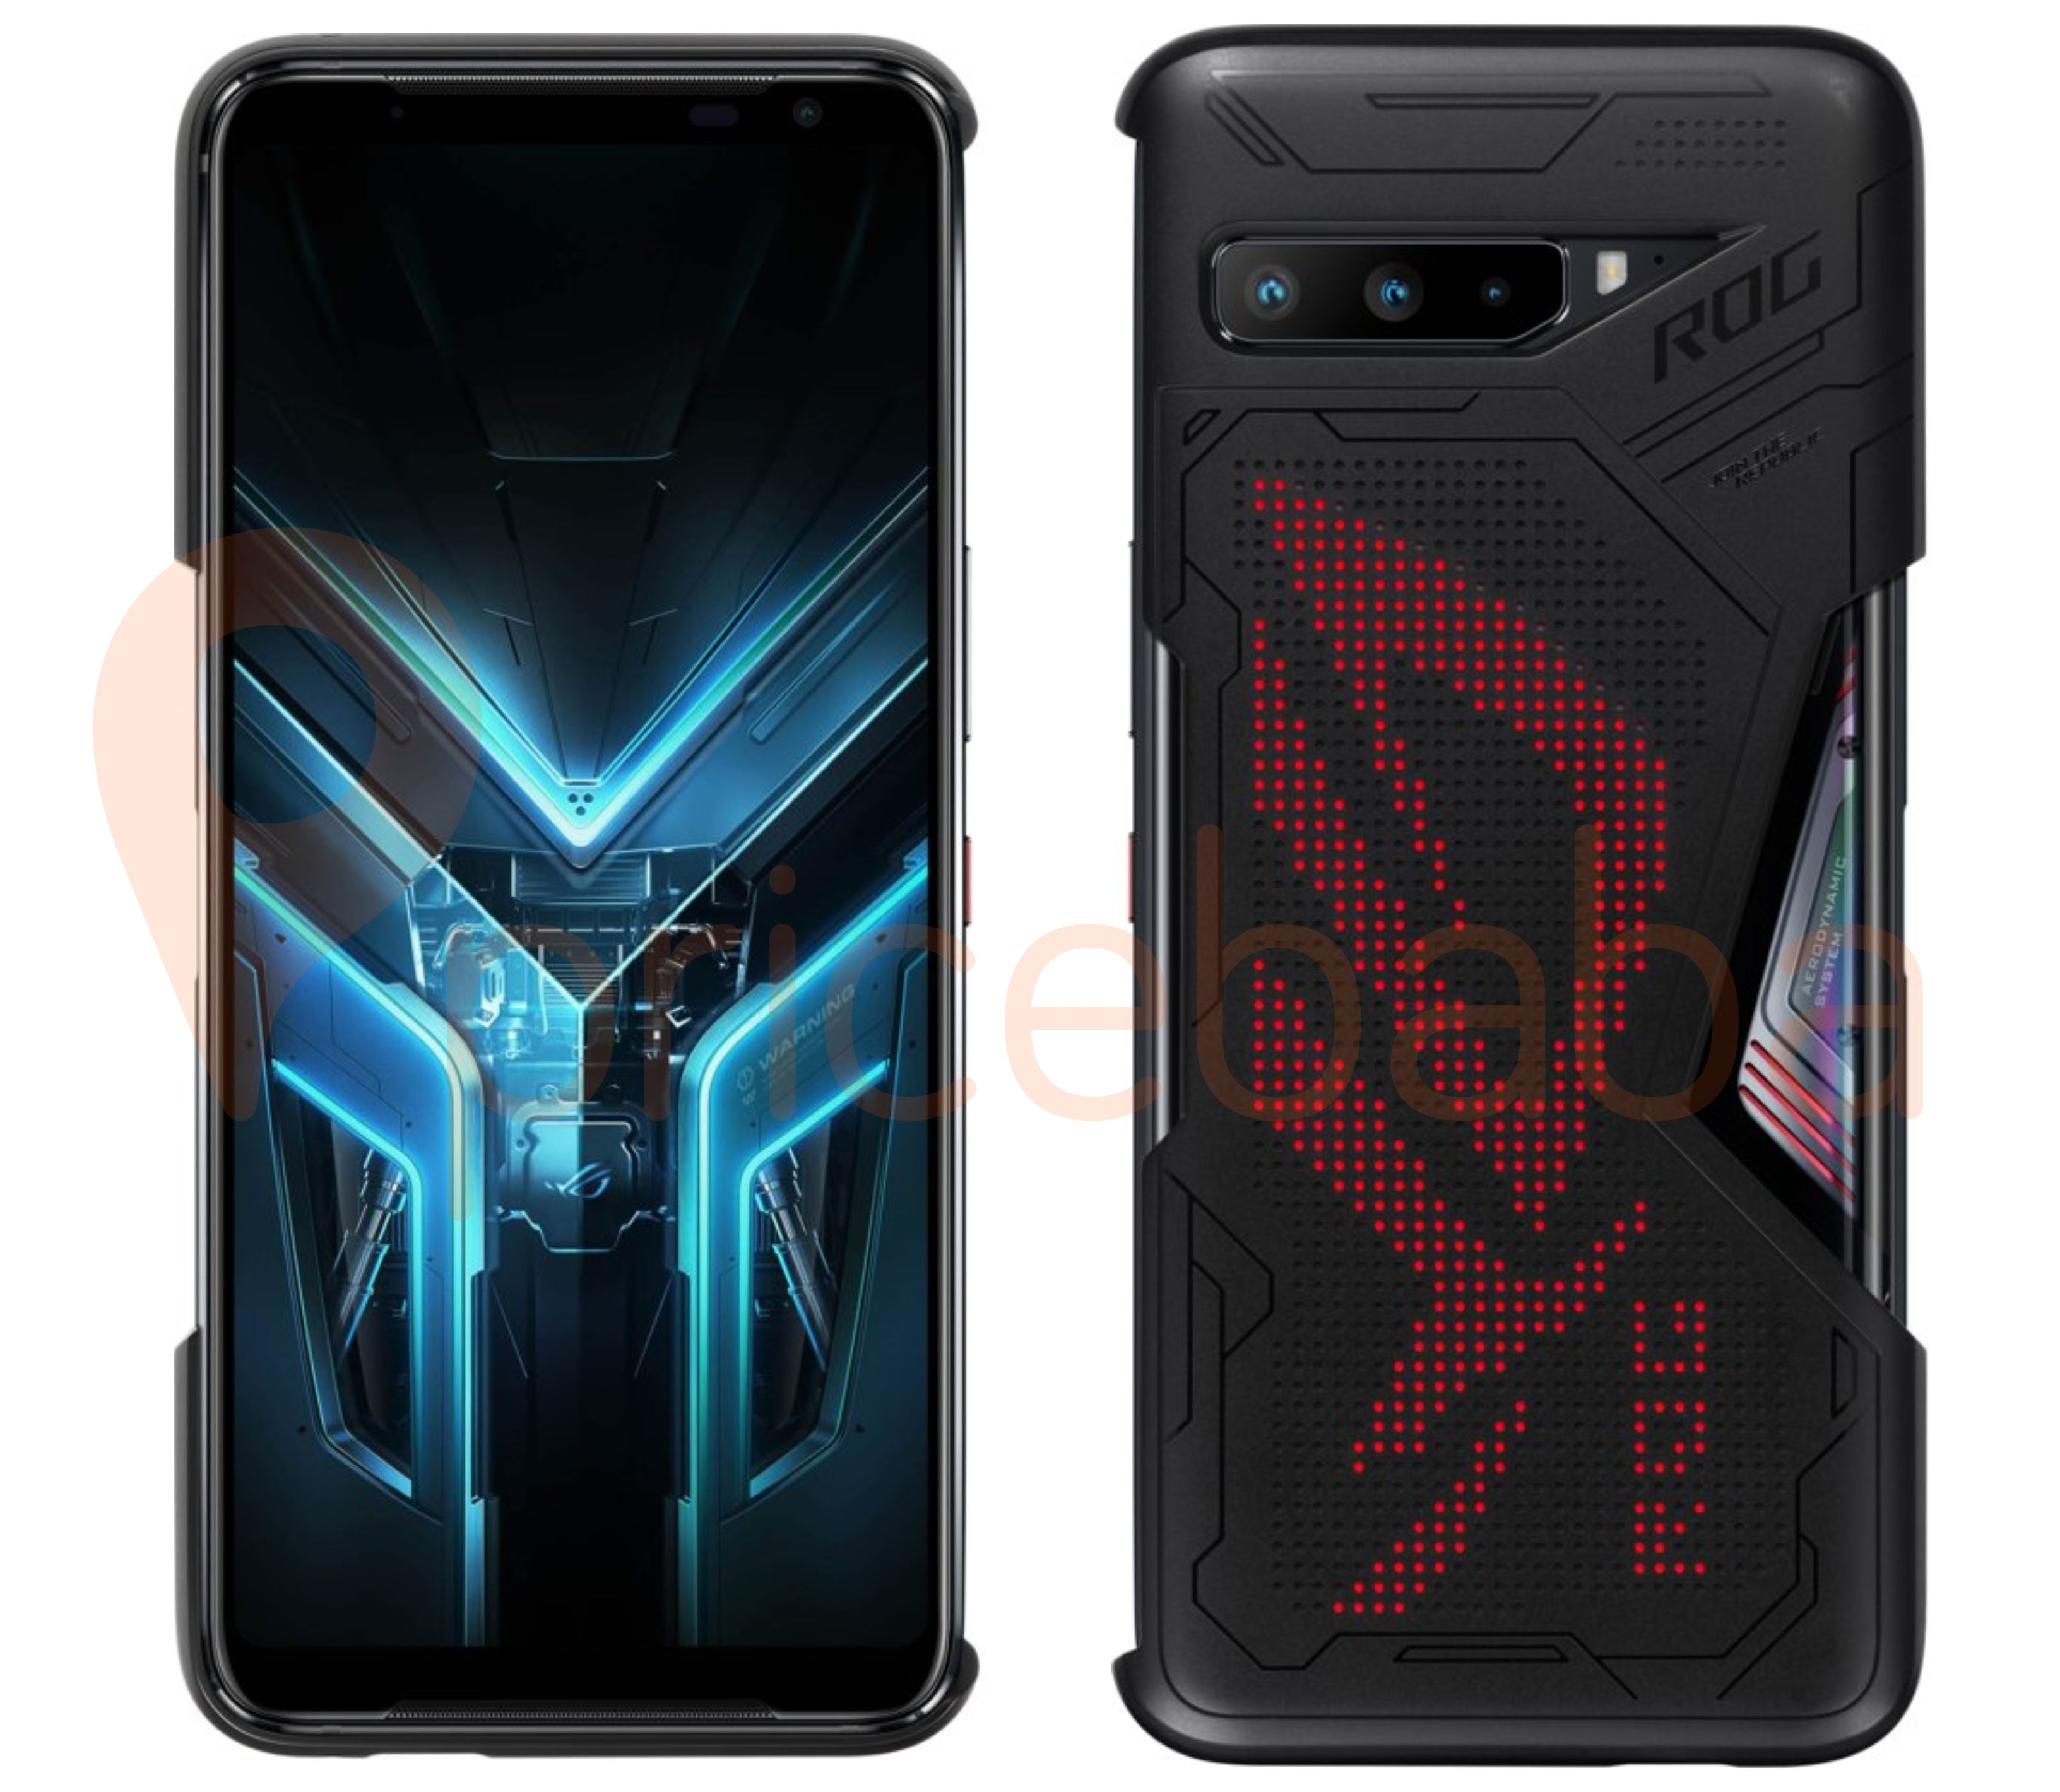 The Lighting Armor Case for ROG Phone 3 now has RGB lighting in LED setup